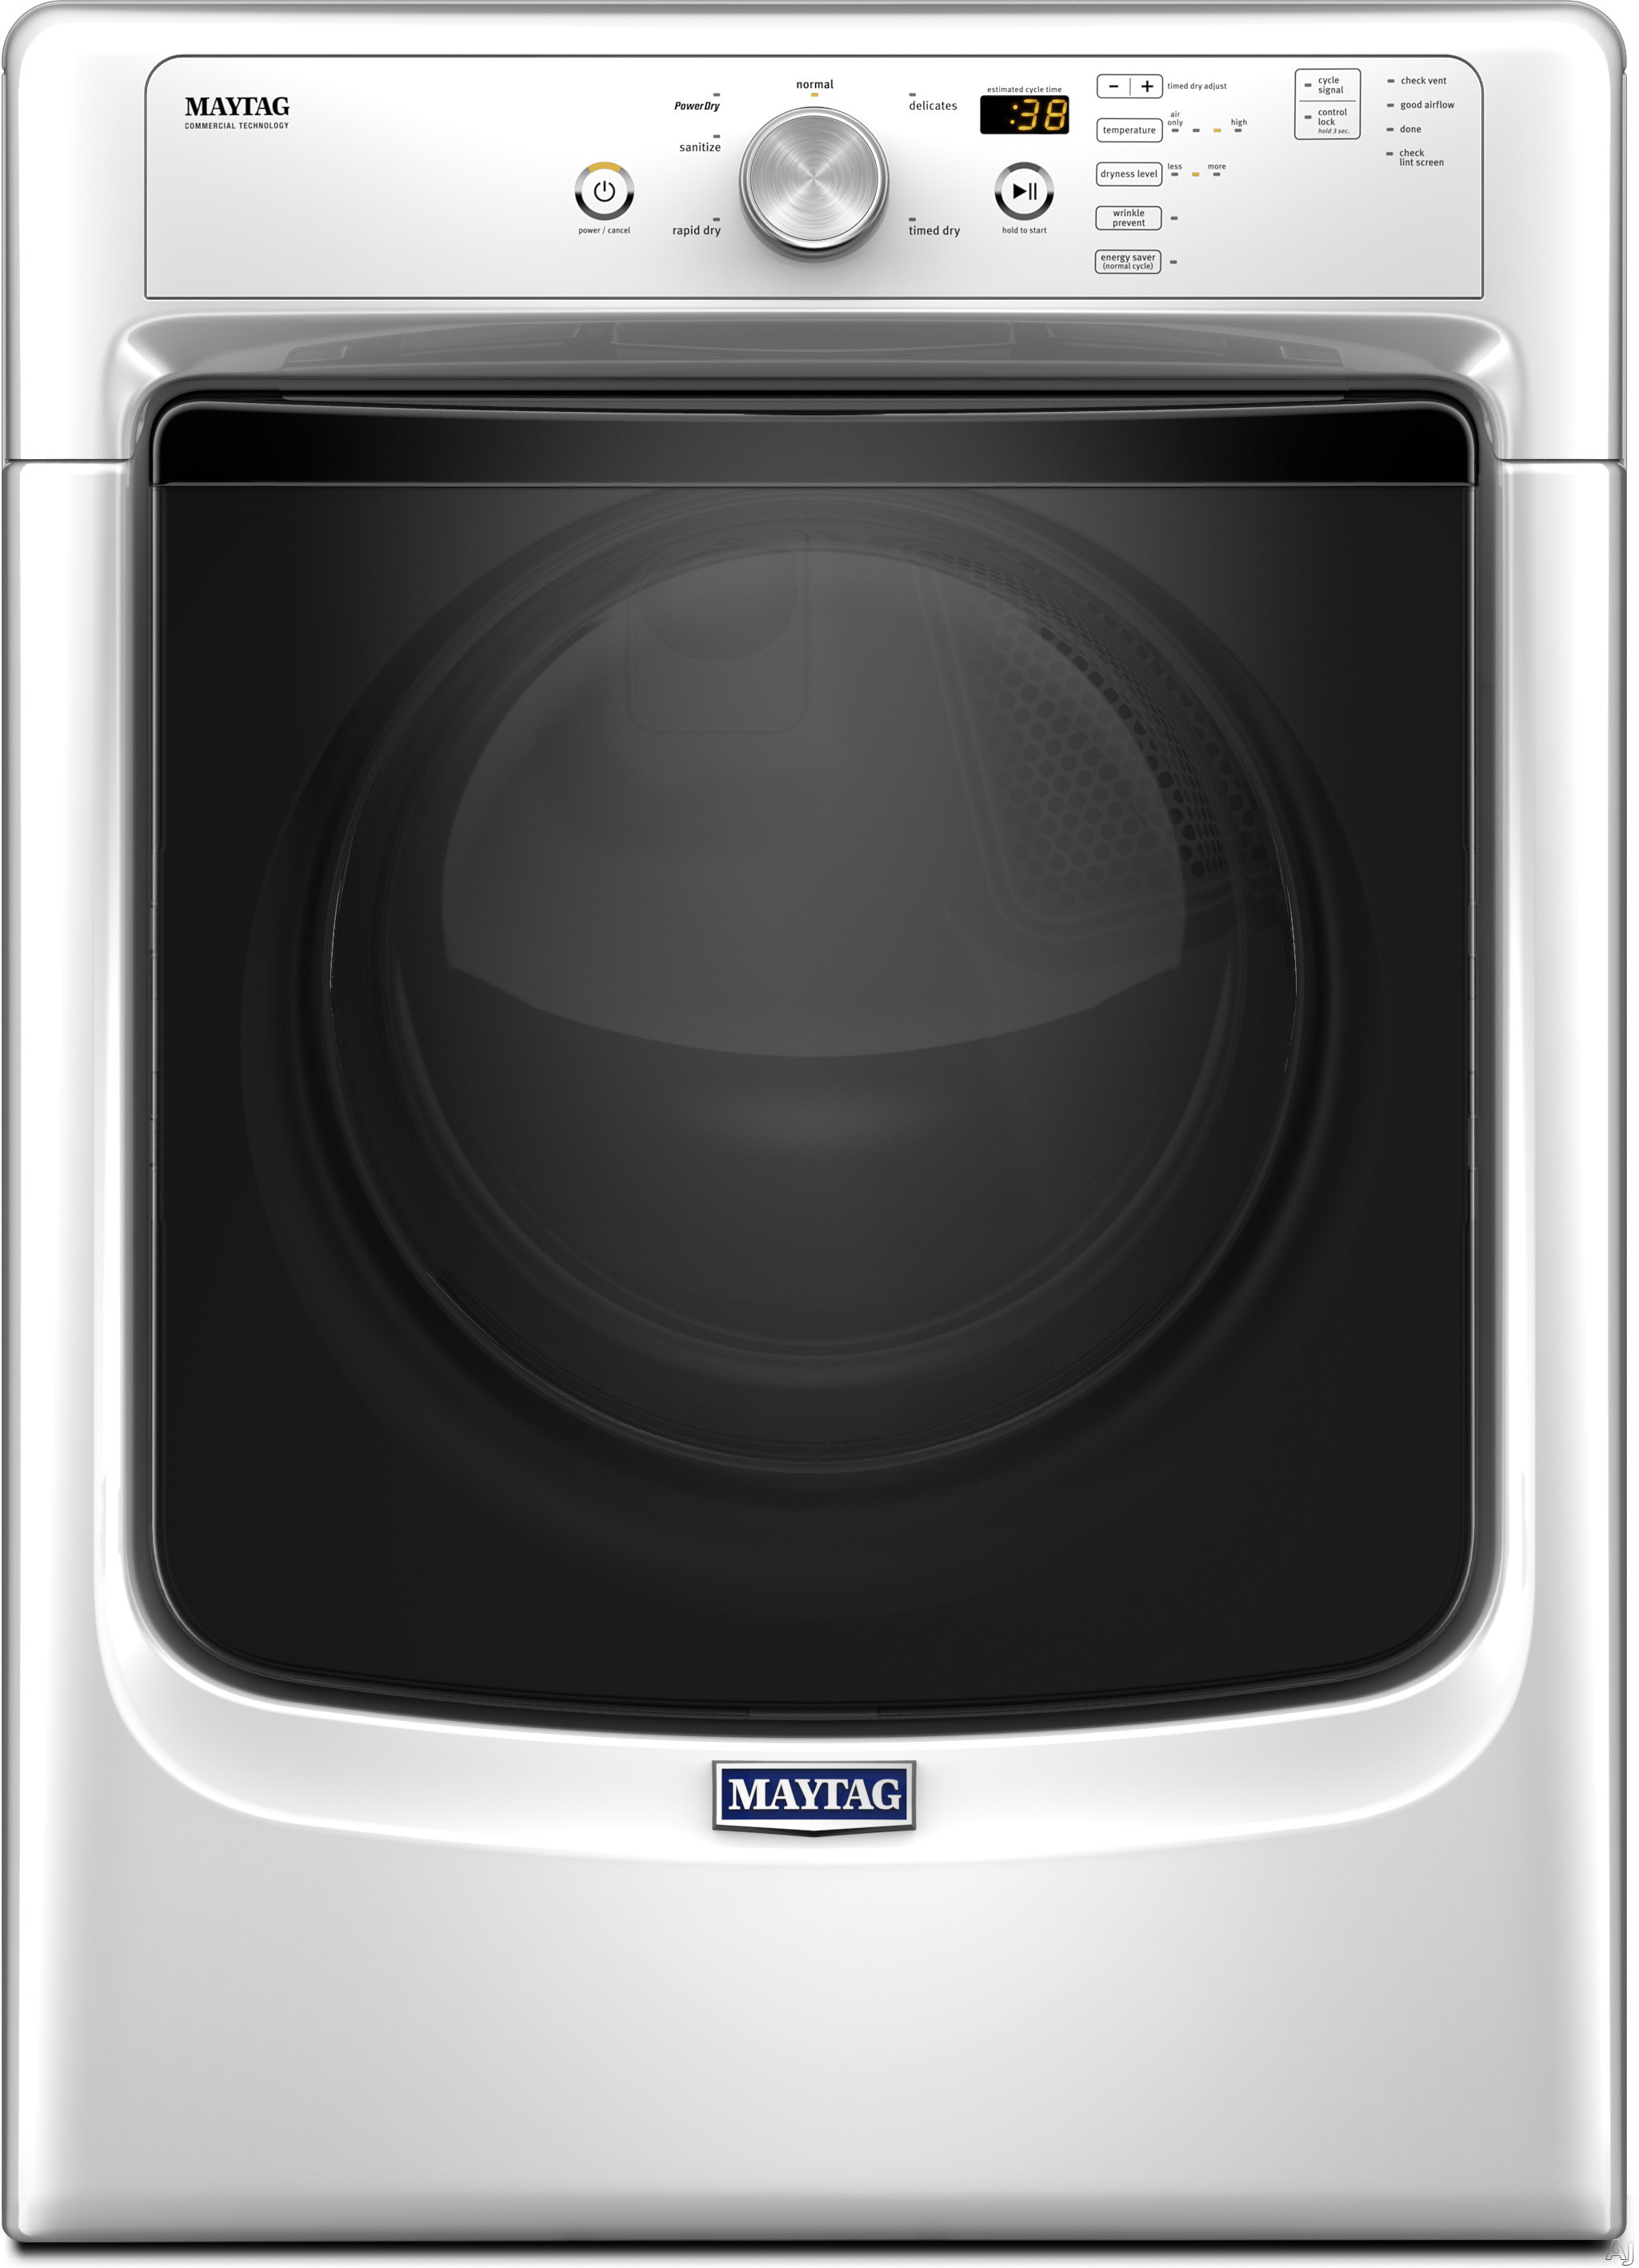 Image of Maytag MGD3500FW 27 Inch 7.4 cu. ft. Gas Dryer with PowerDry System, Wrinkle Prevent Option, Sanitize Cycle, Rapid Dry Cycle, Extra Interior Fin, 7.4 cu. ft. Capacity, 6 Dry Cycles and 4 Temperature Selections